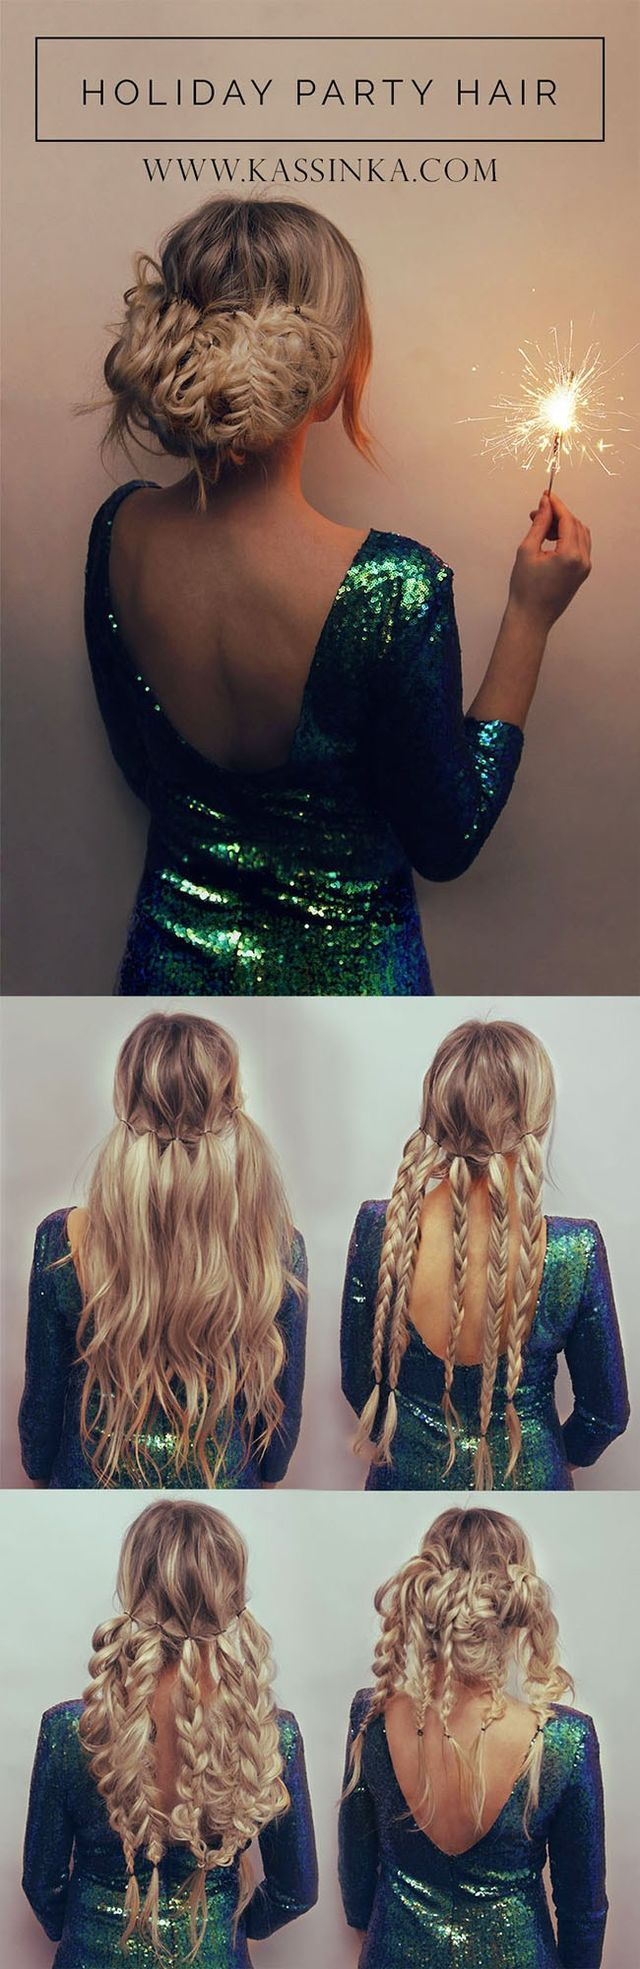 Holiday Party Hair Tutorial | Kassinka | Bloglovin'